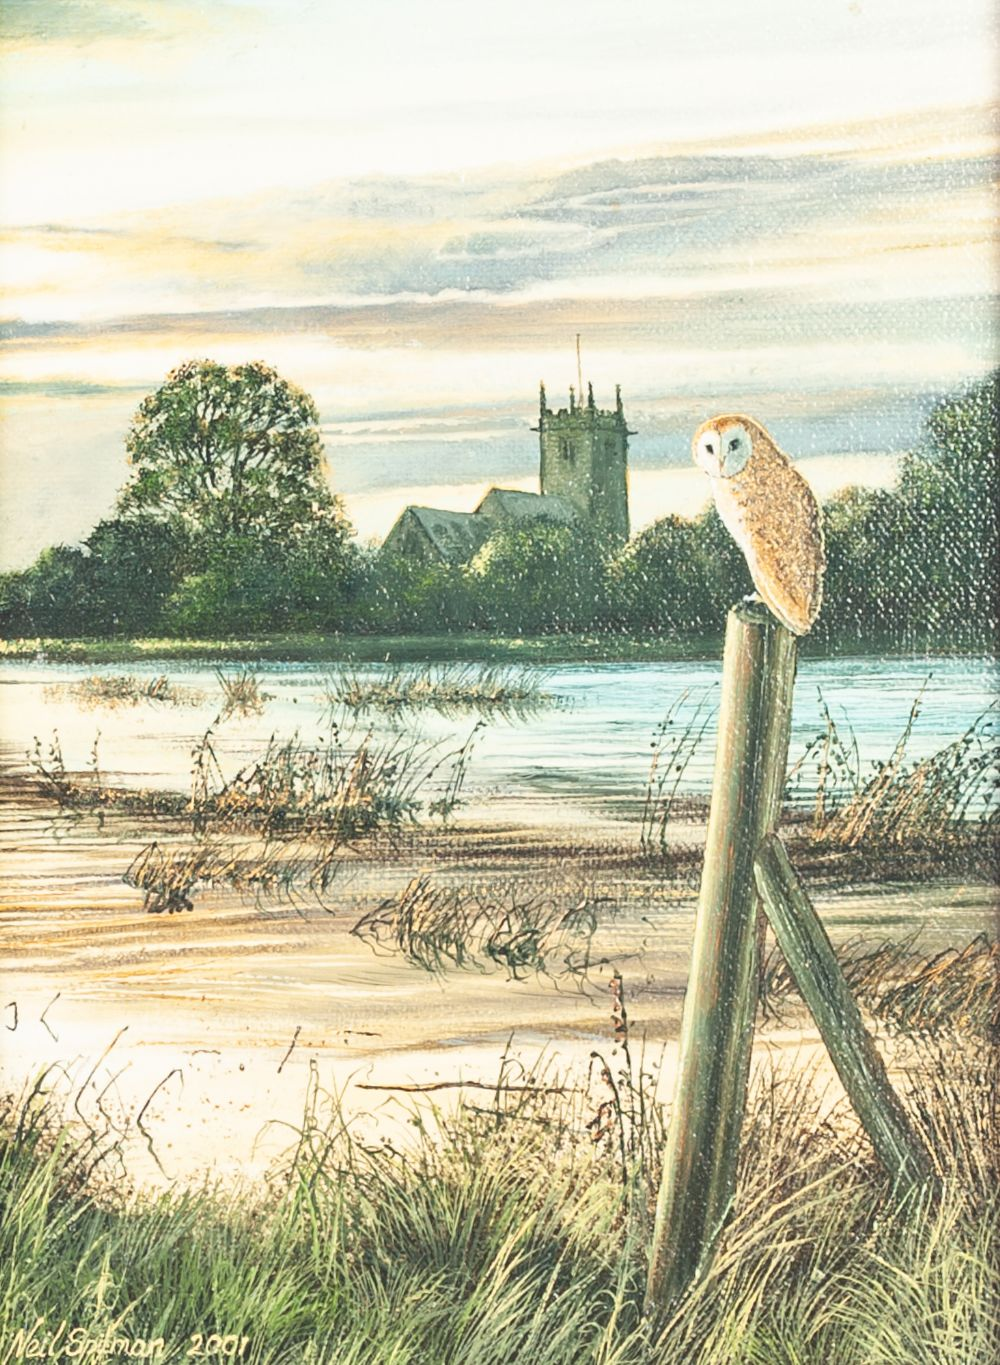 Lot 242 - NEIL SPILMAN (b. 1951) OIL PAINTING ON BOARD 'Waiting for Evening', barn owl in a landscape Signed